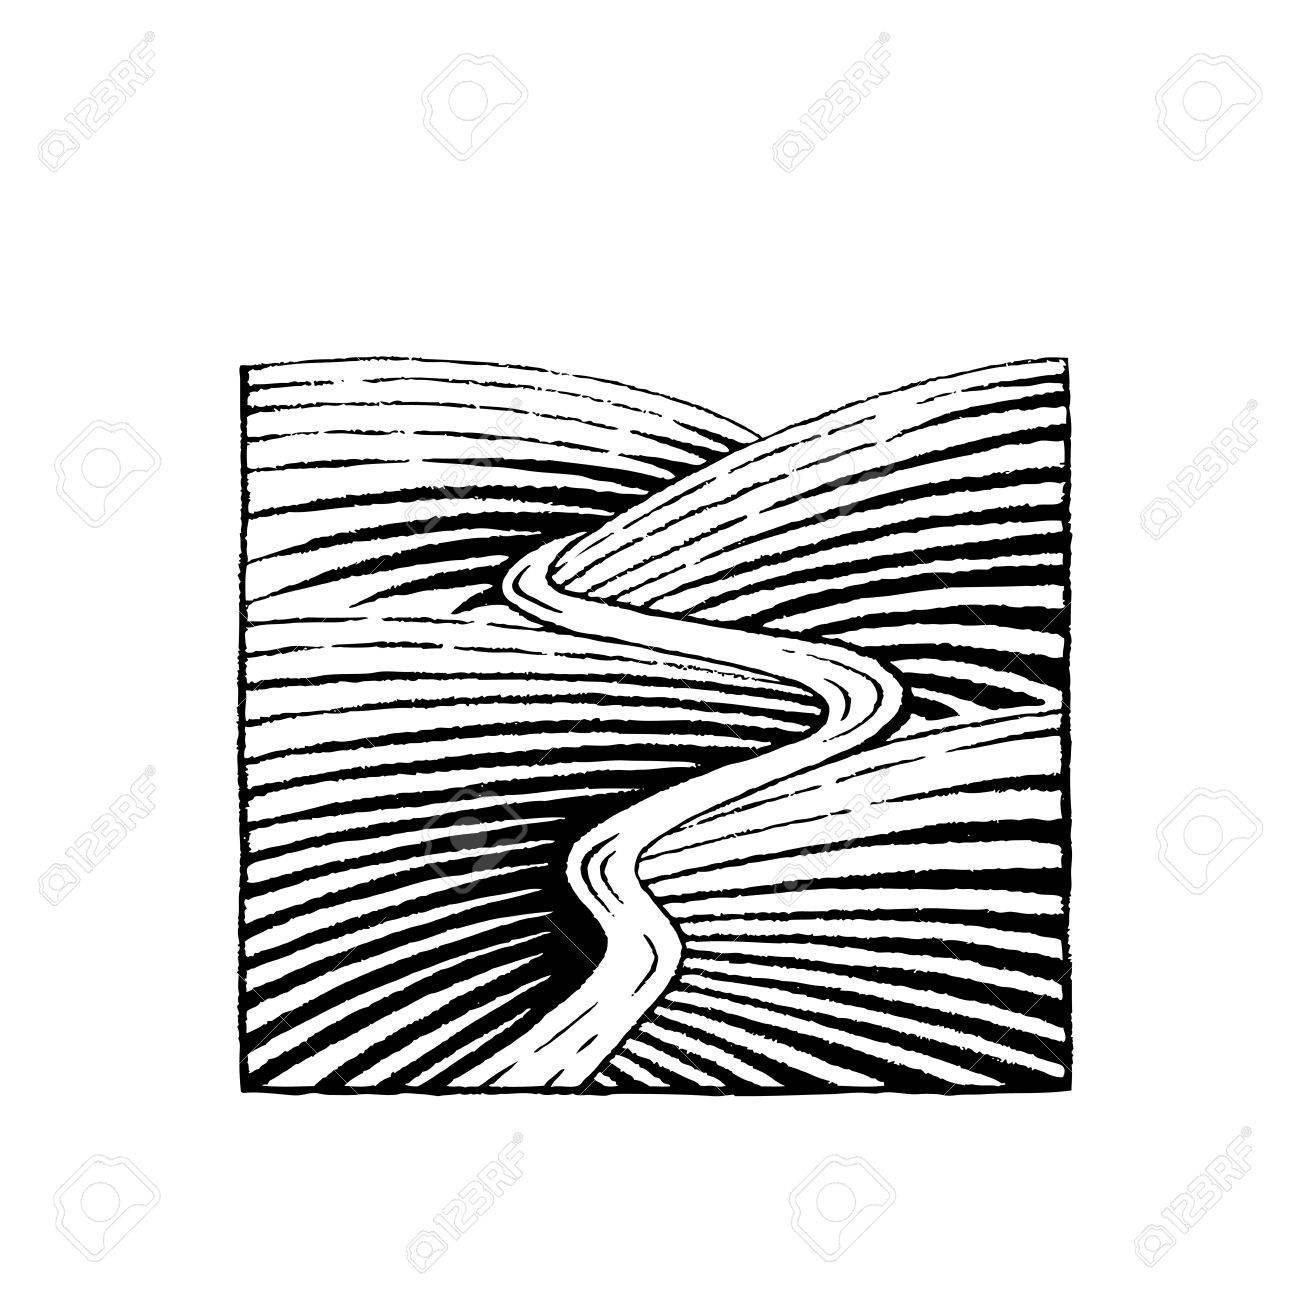 1300x1296 Vector Illustration Of A Scratchboard Style Ink Drawing Of Hills